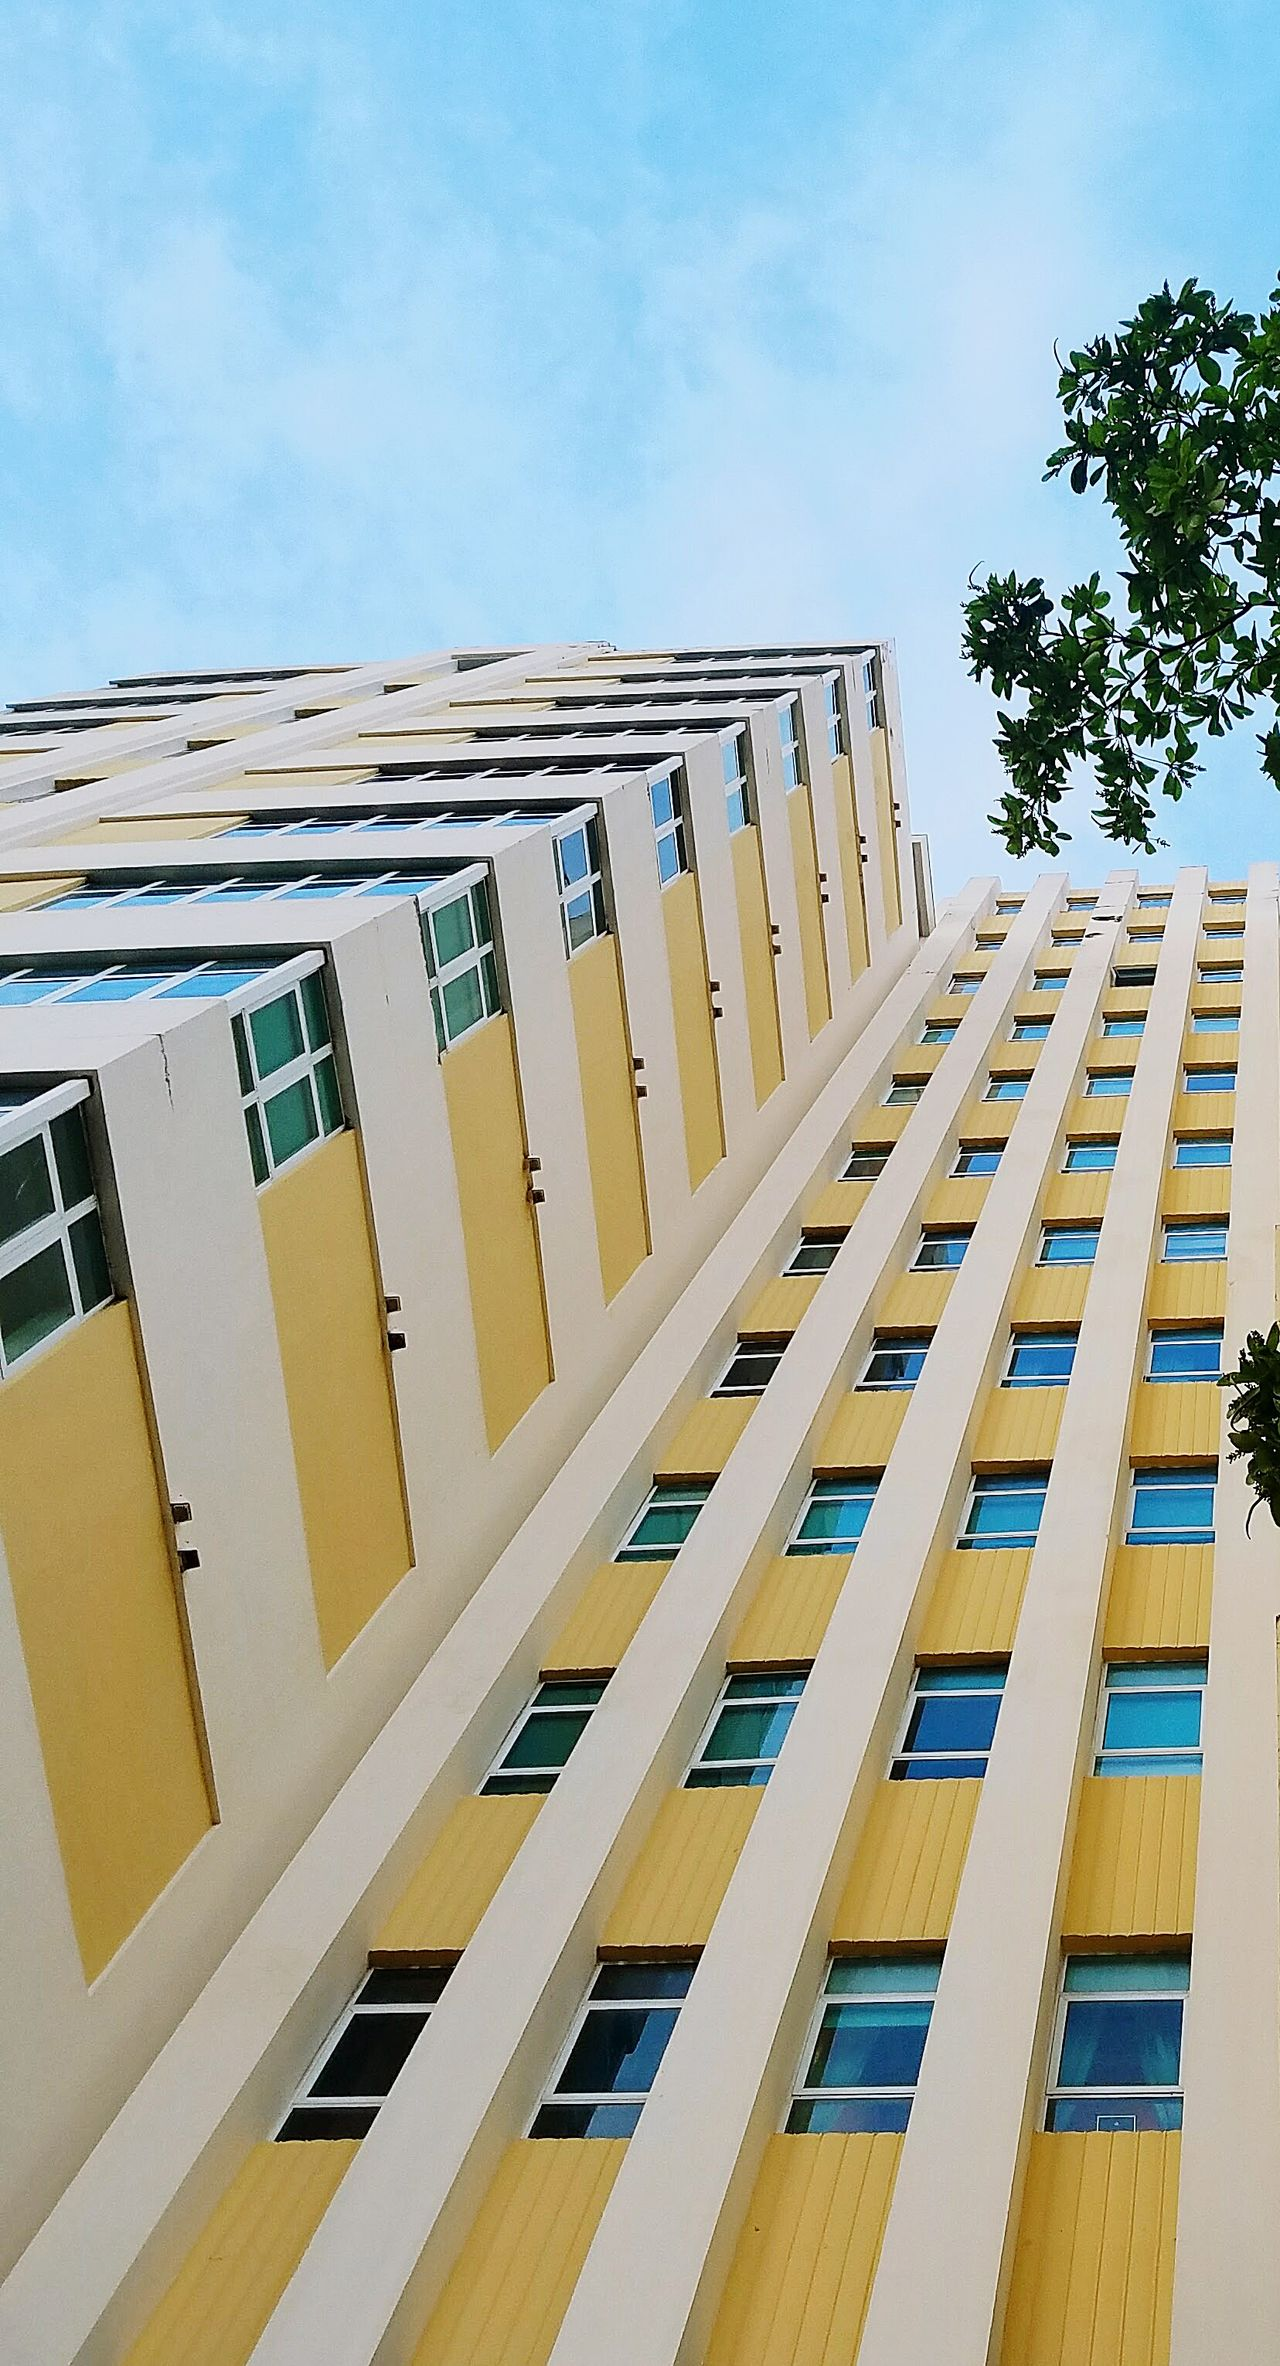 Minimalism Minimalist Architecture City Landscape Yellow Sky Building Exterior Colors Of My City Perspective Lines And Angles Architecture San Juan PR Simple Elegance City View  Break The Mold Forms And Shapes Still Life